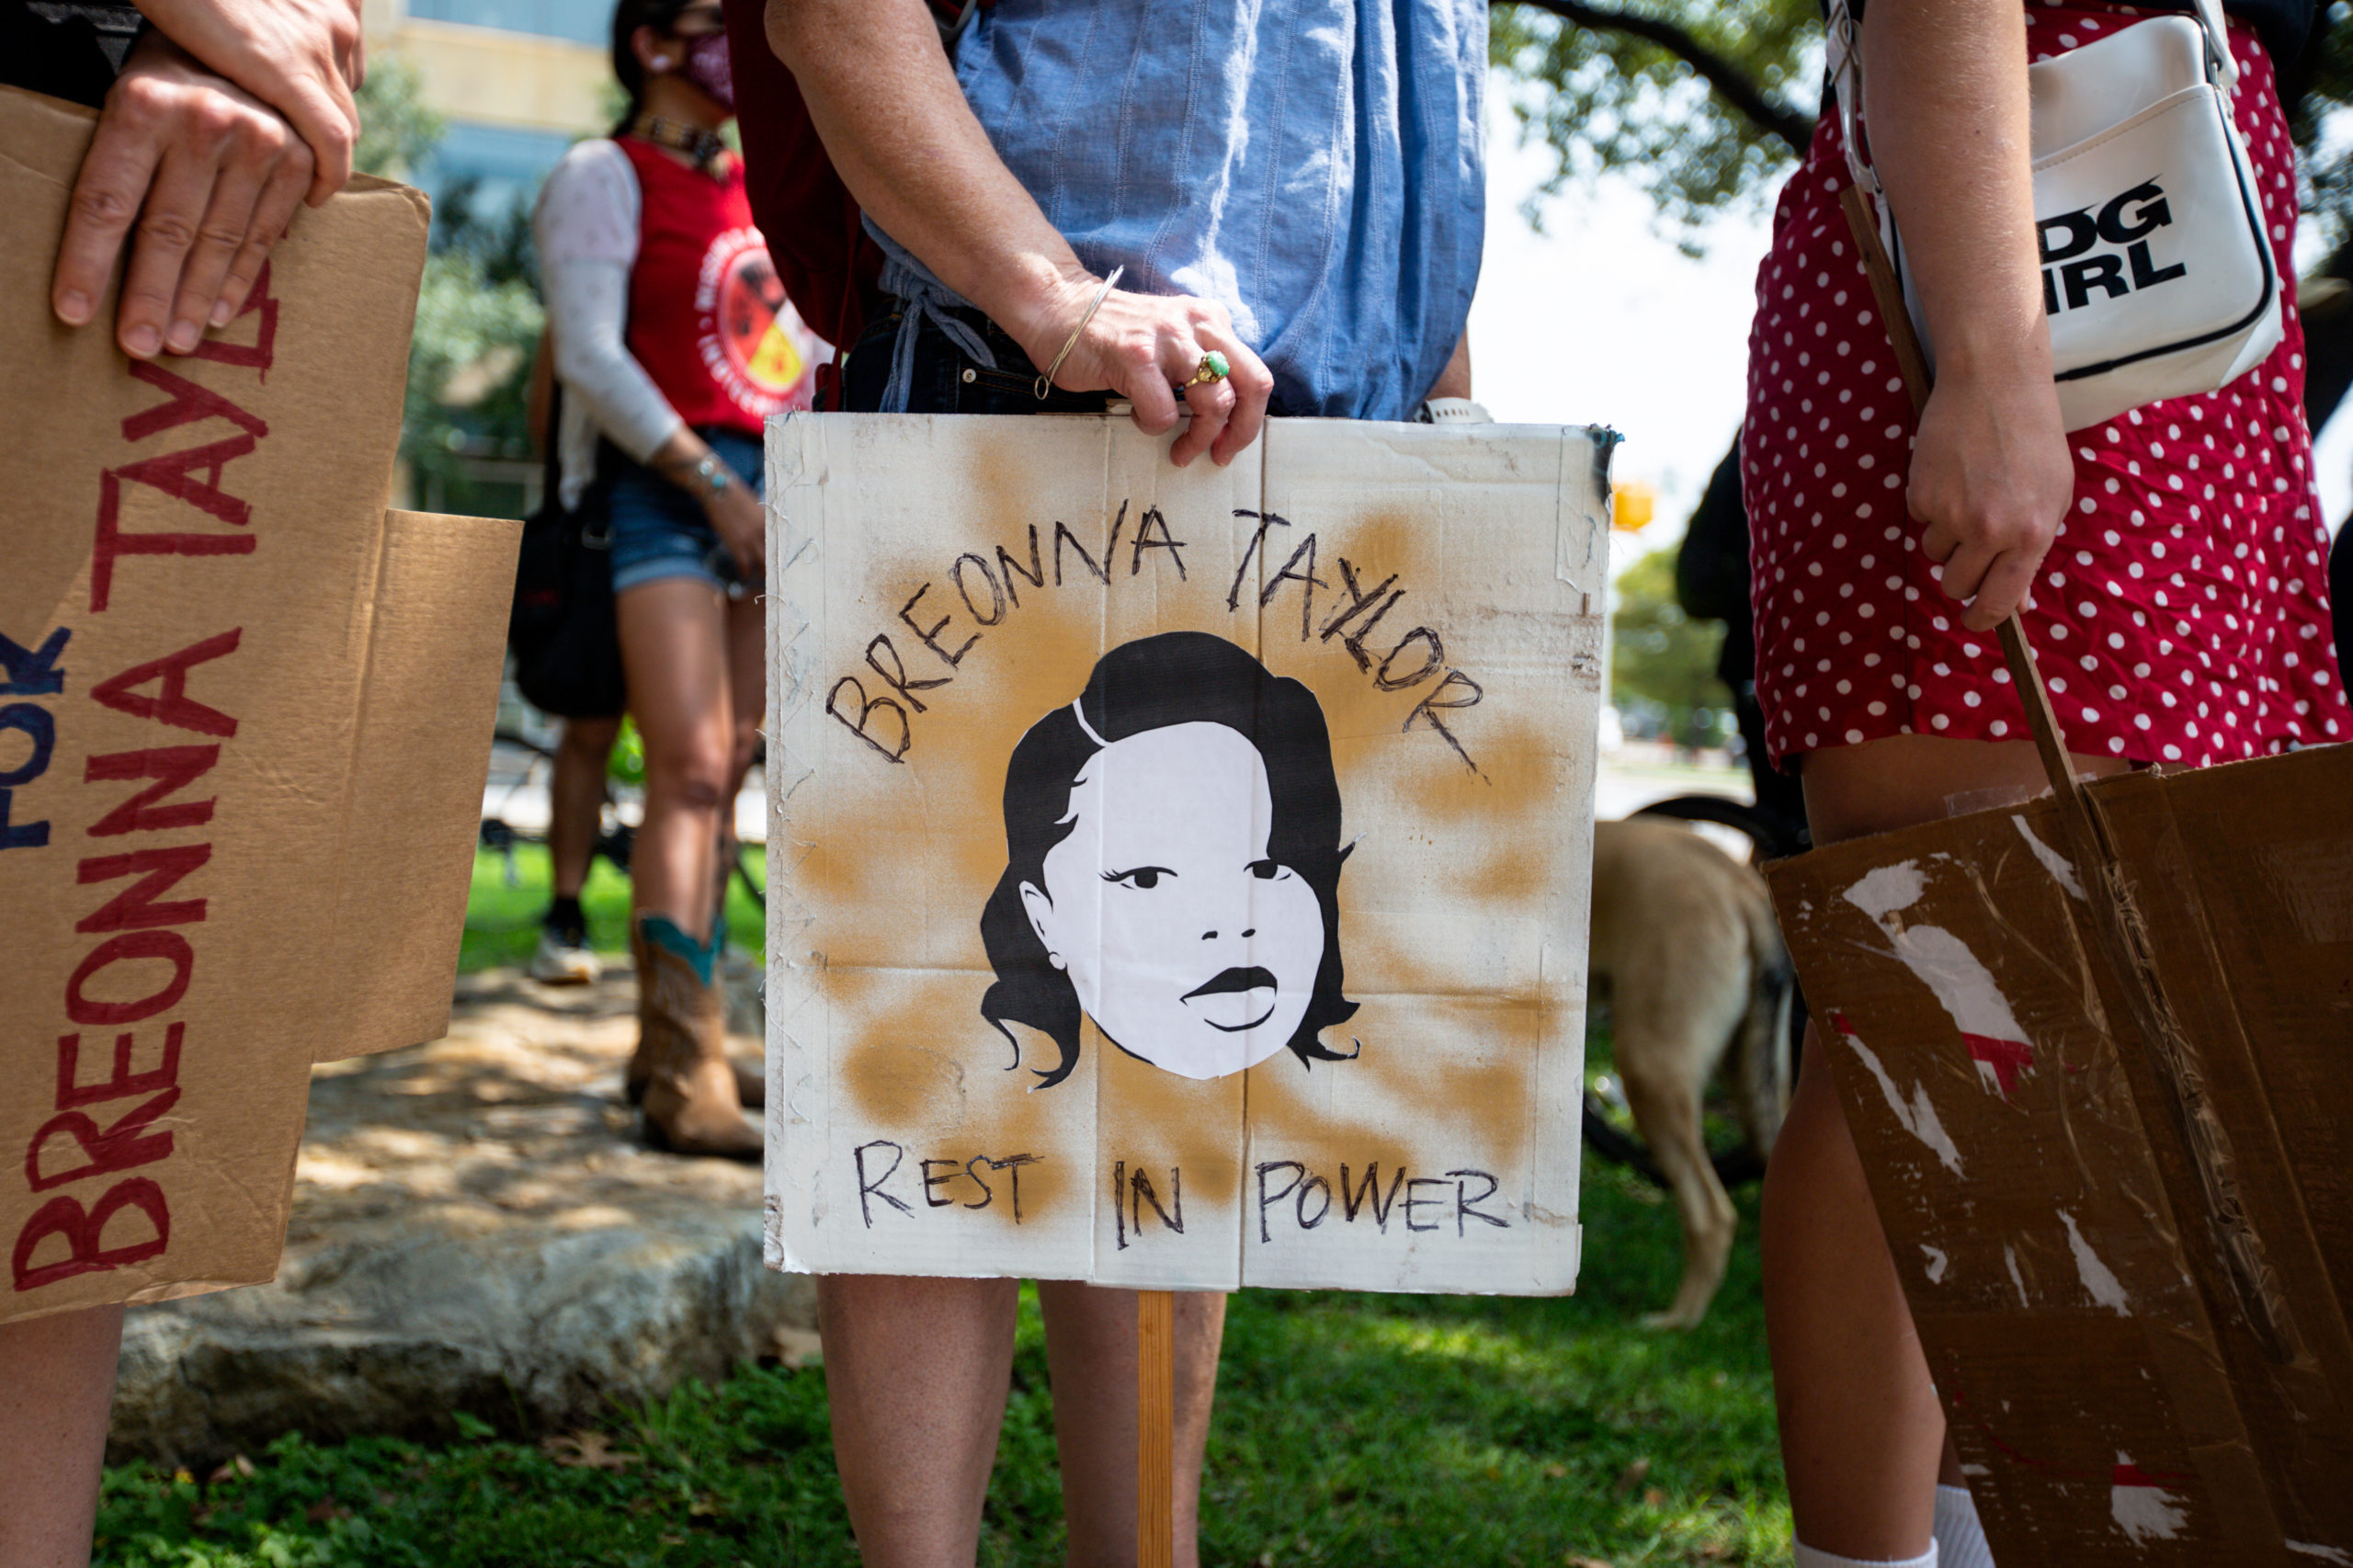 AUSTIN, TX - SEPTEMBER 19: Community members gathered for a Stand 4 Breonna event to demand justice for Breonna Taylor on September 19, 2020 in Austin, Texas. Taylor, 26, was killed by Louisville police officers as she slept in her apartment on March 13, 2020. (Photo by Montinique Monroe/Getty Images)